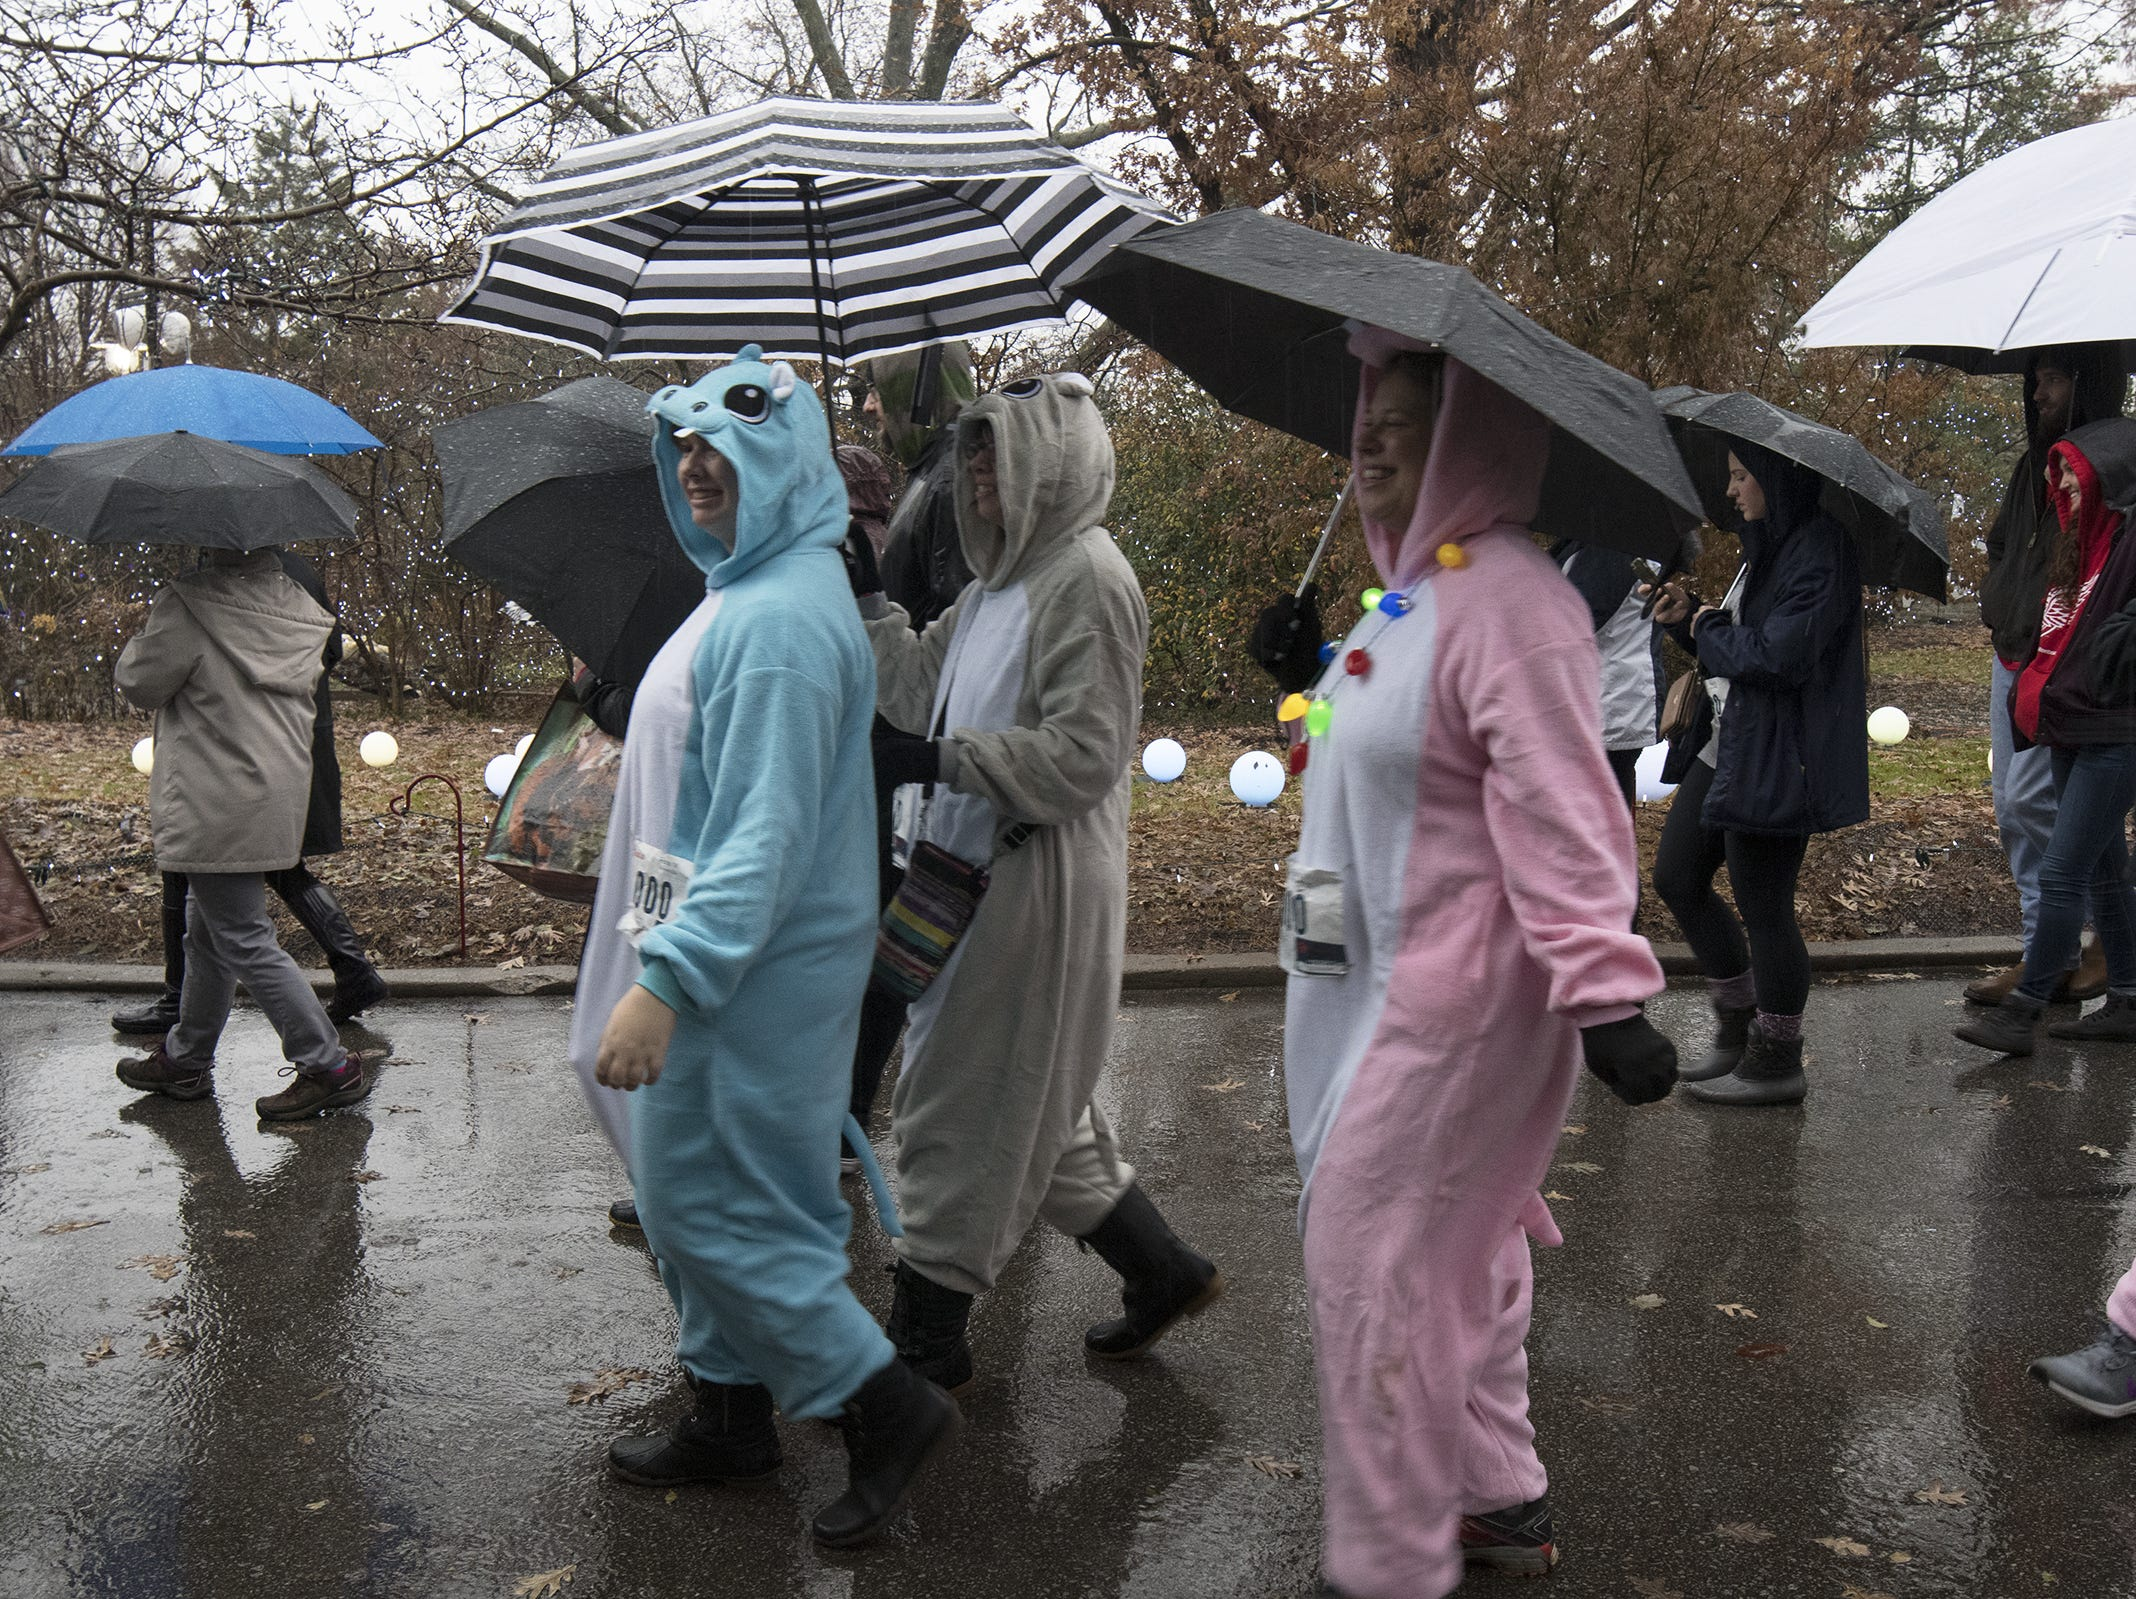 Rain doesn't stop hundreds of avid Fiona fans from coming out to the Cincinnati Zoo to walk a 1k in honor of the beloved hippo's 1,000-pound milestone Saturday, December 1, 2018 in Cincinnati, Ohio.